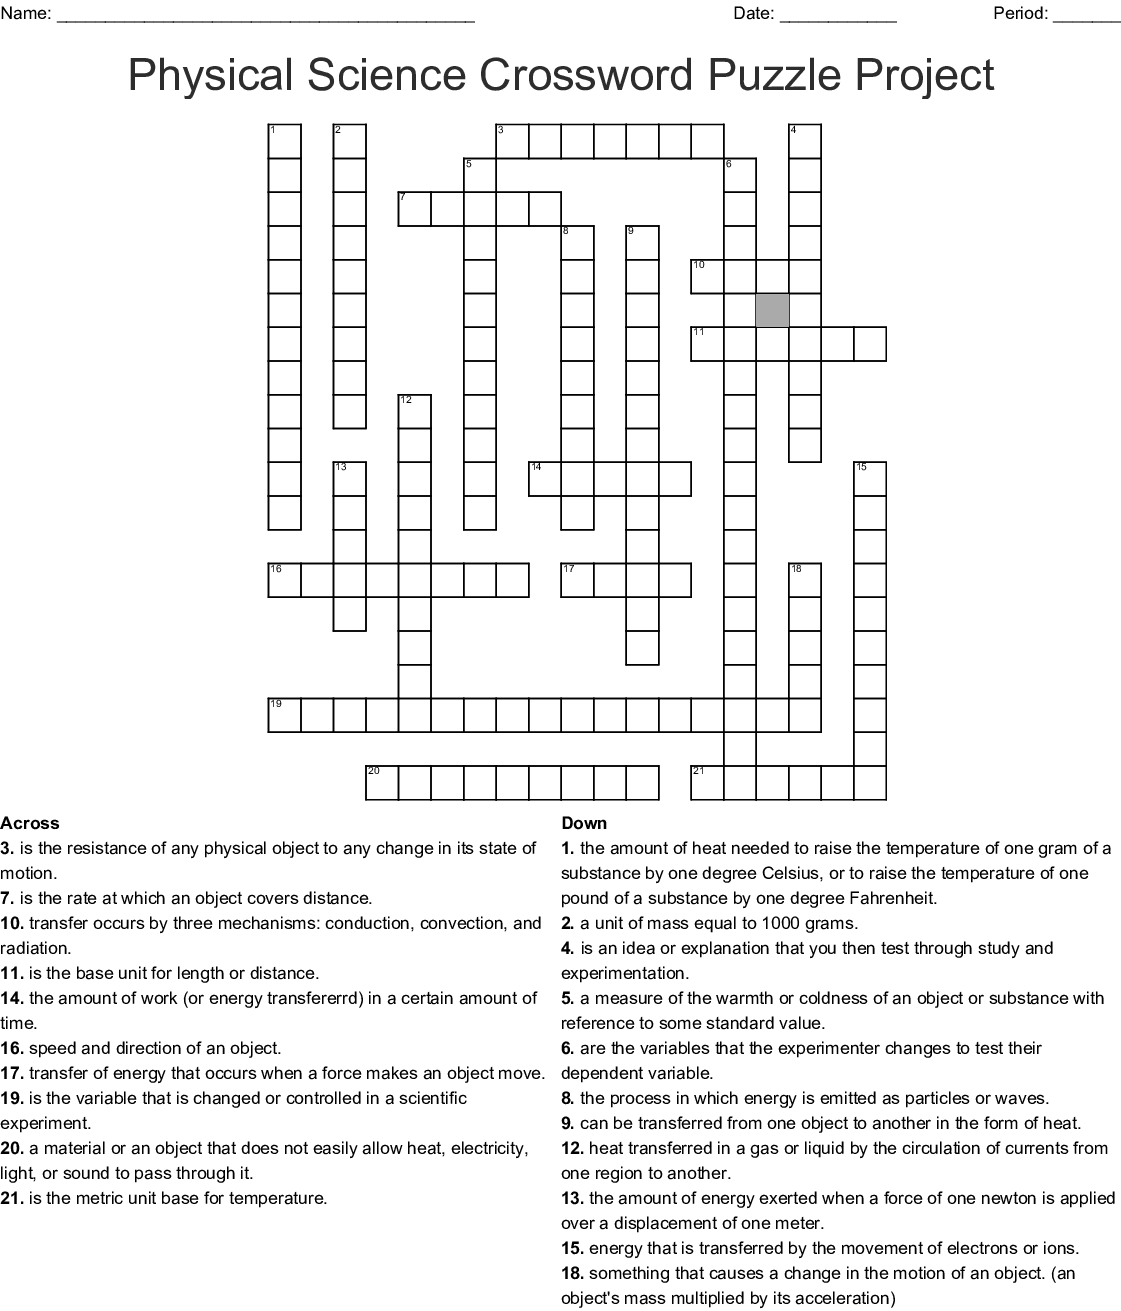 Physical Science Crossword Puzzle Project Crossword